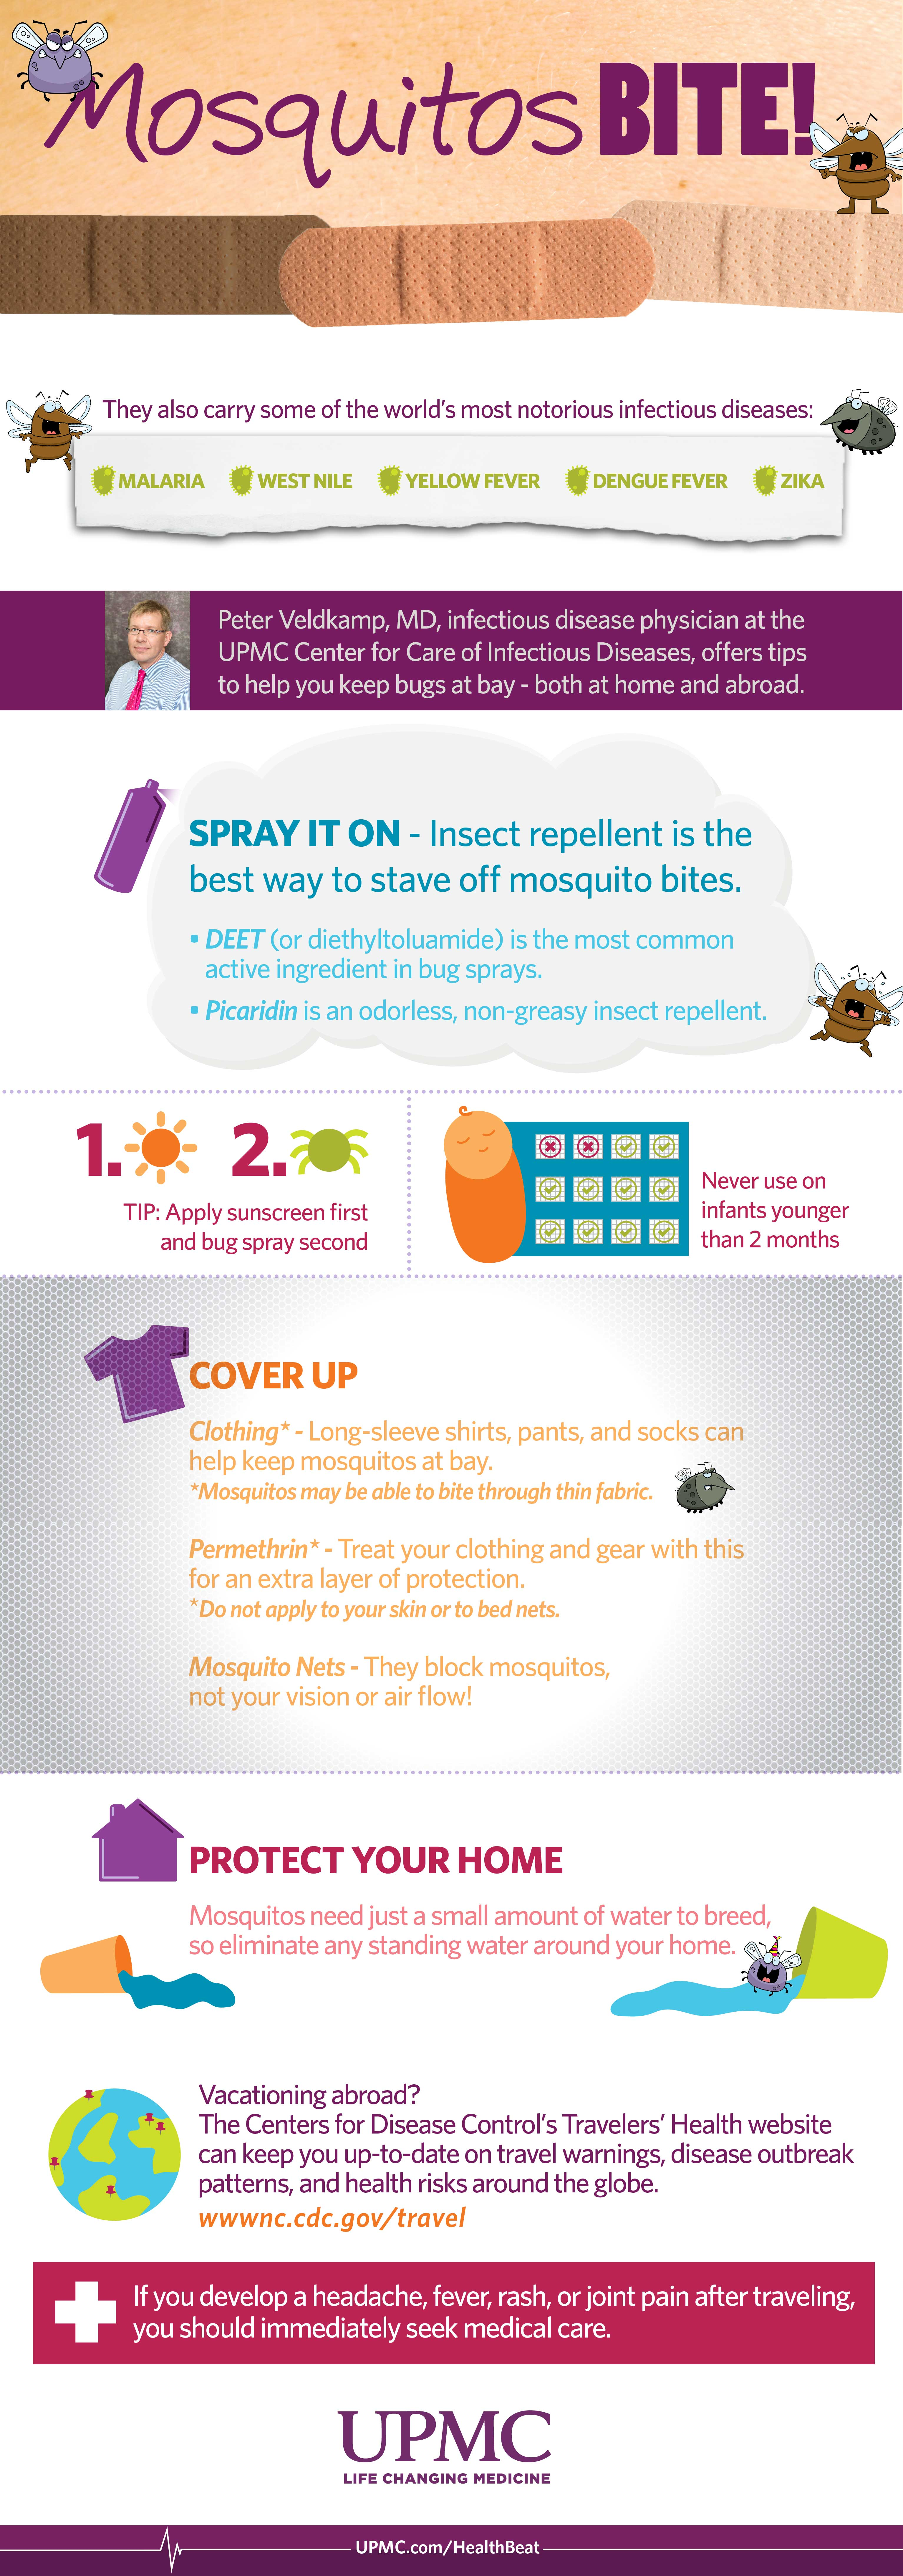 Learn more about how you can prevent pesky mosquito bites